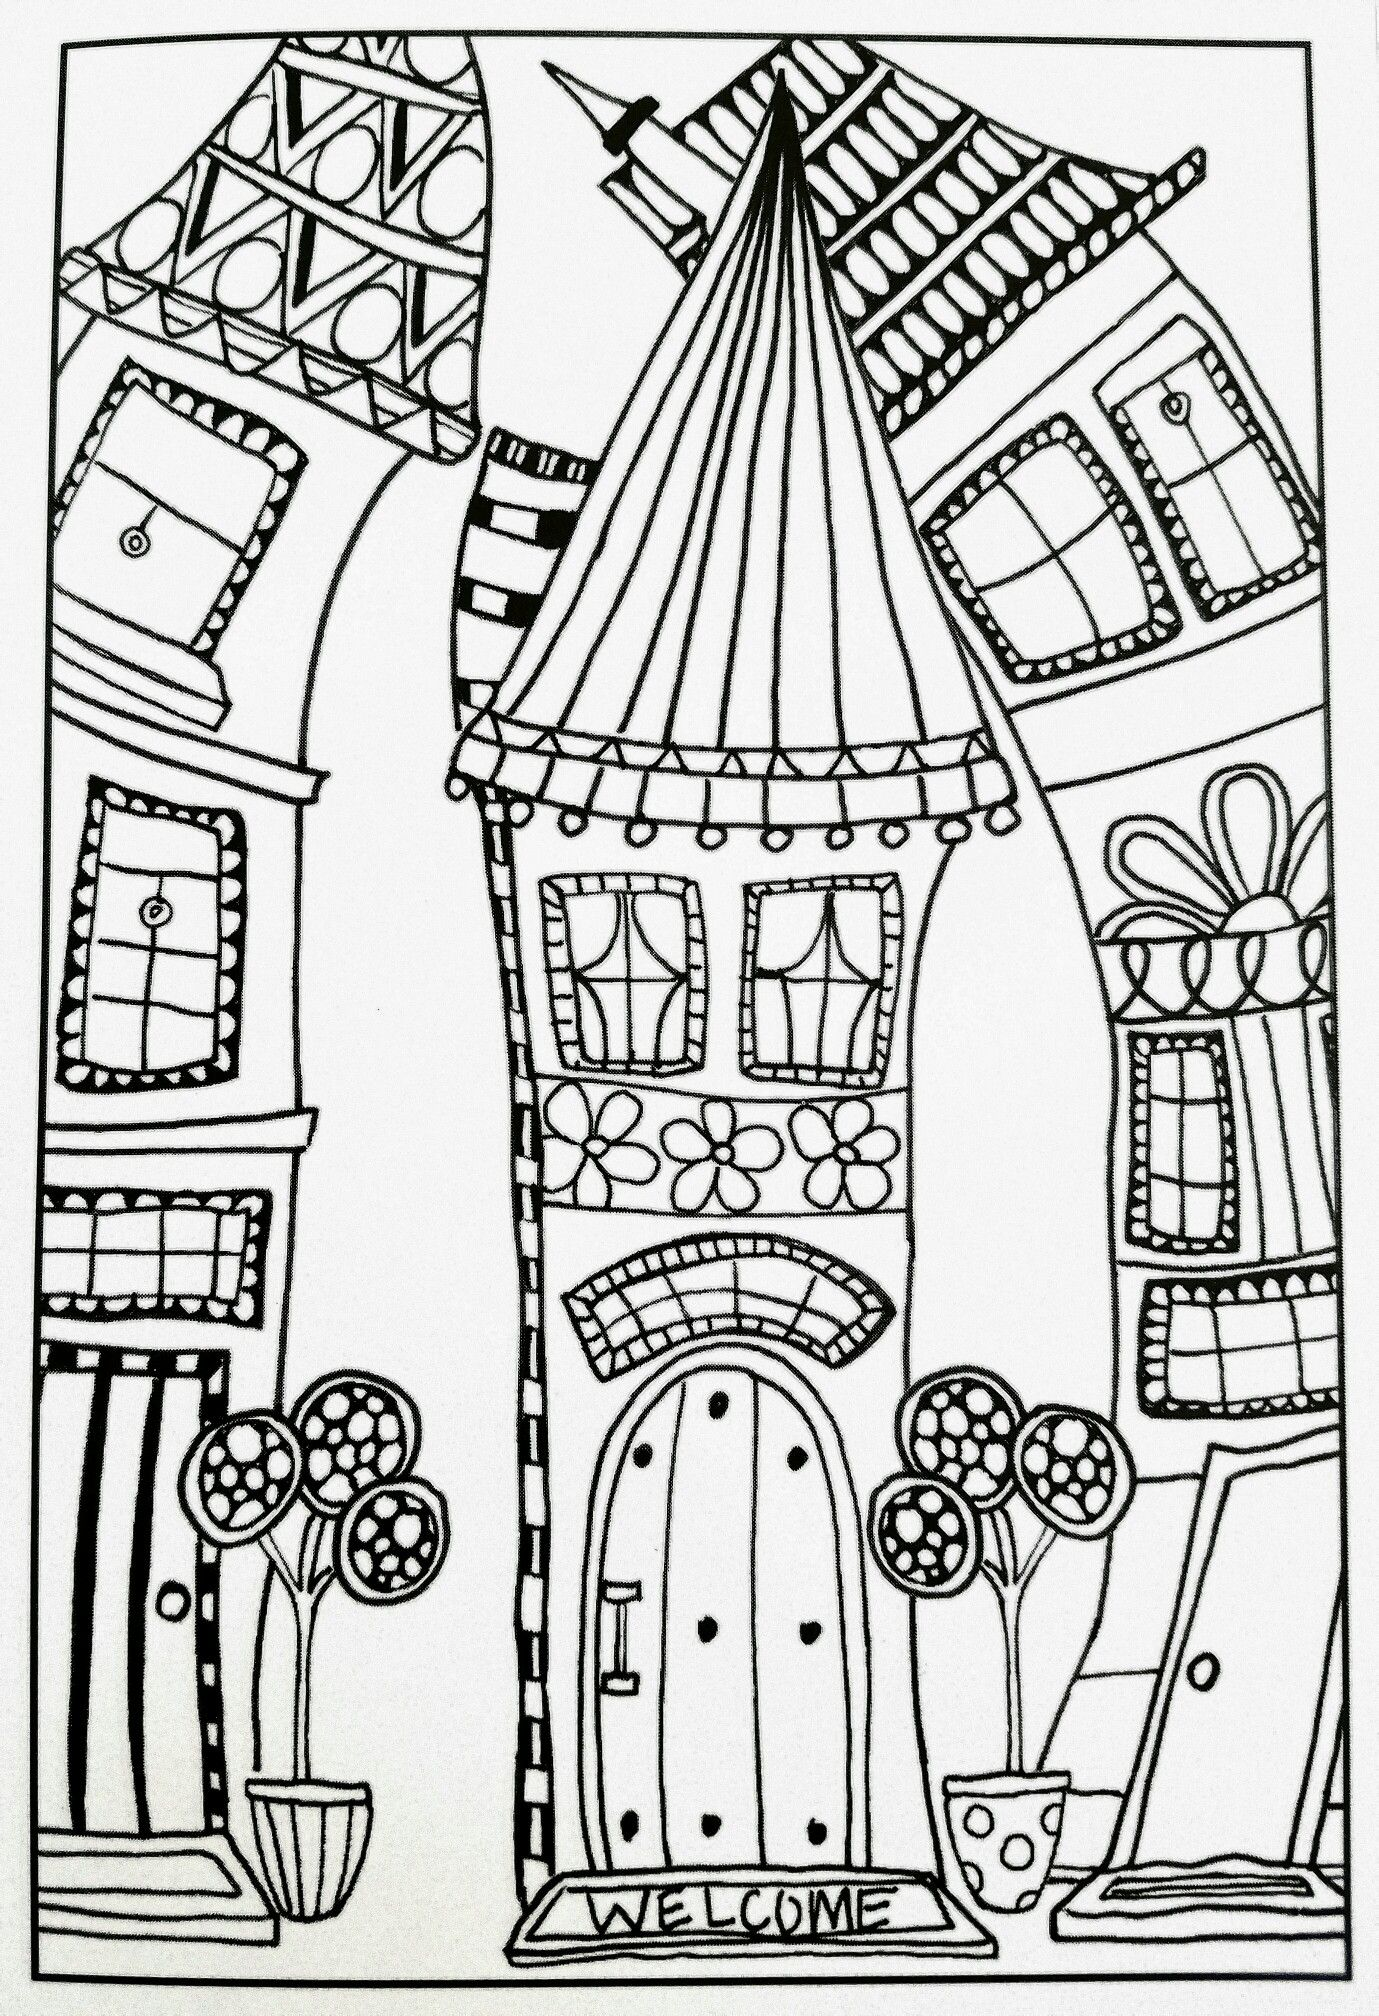 Whimsical Houses Inkspirations Adult Coloring Page Coloring